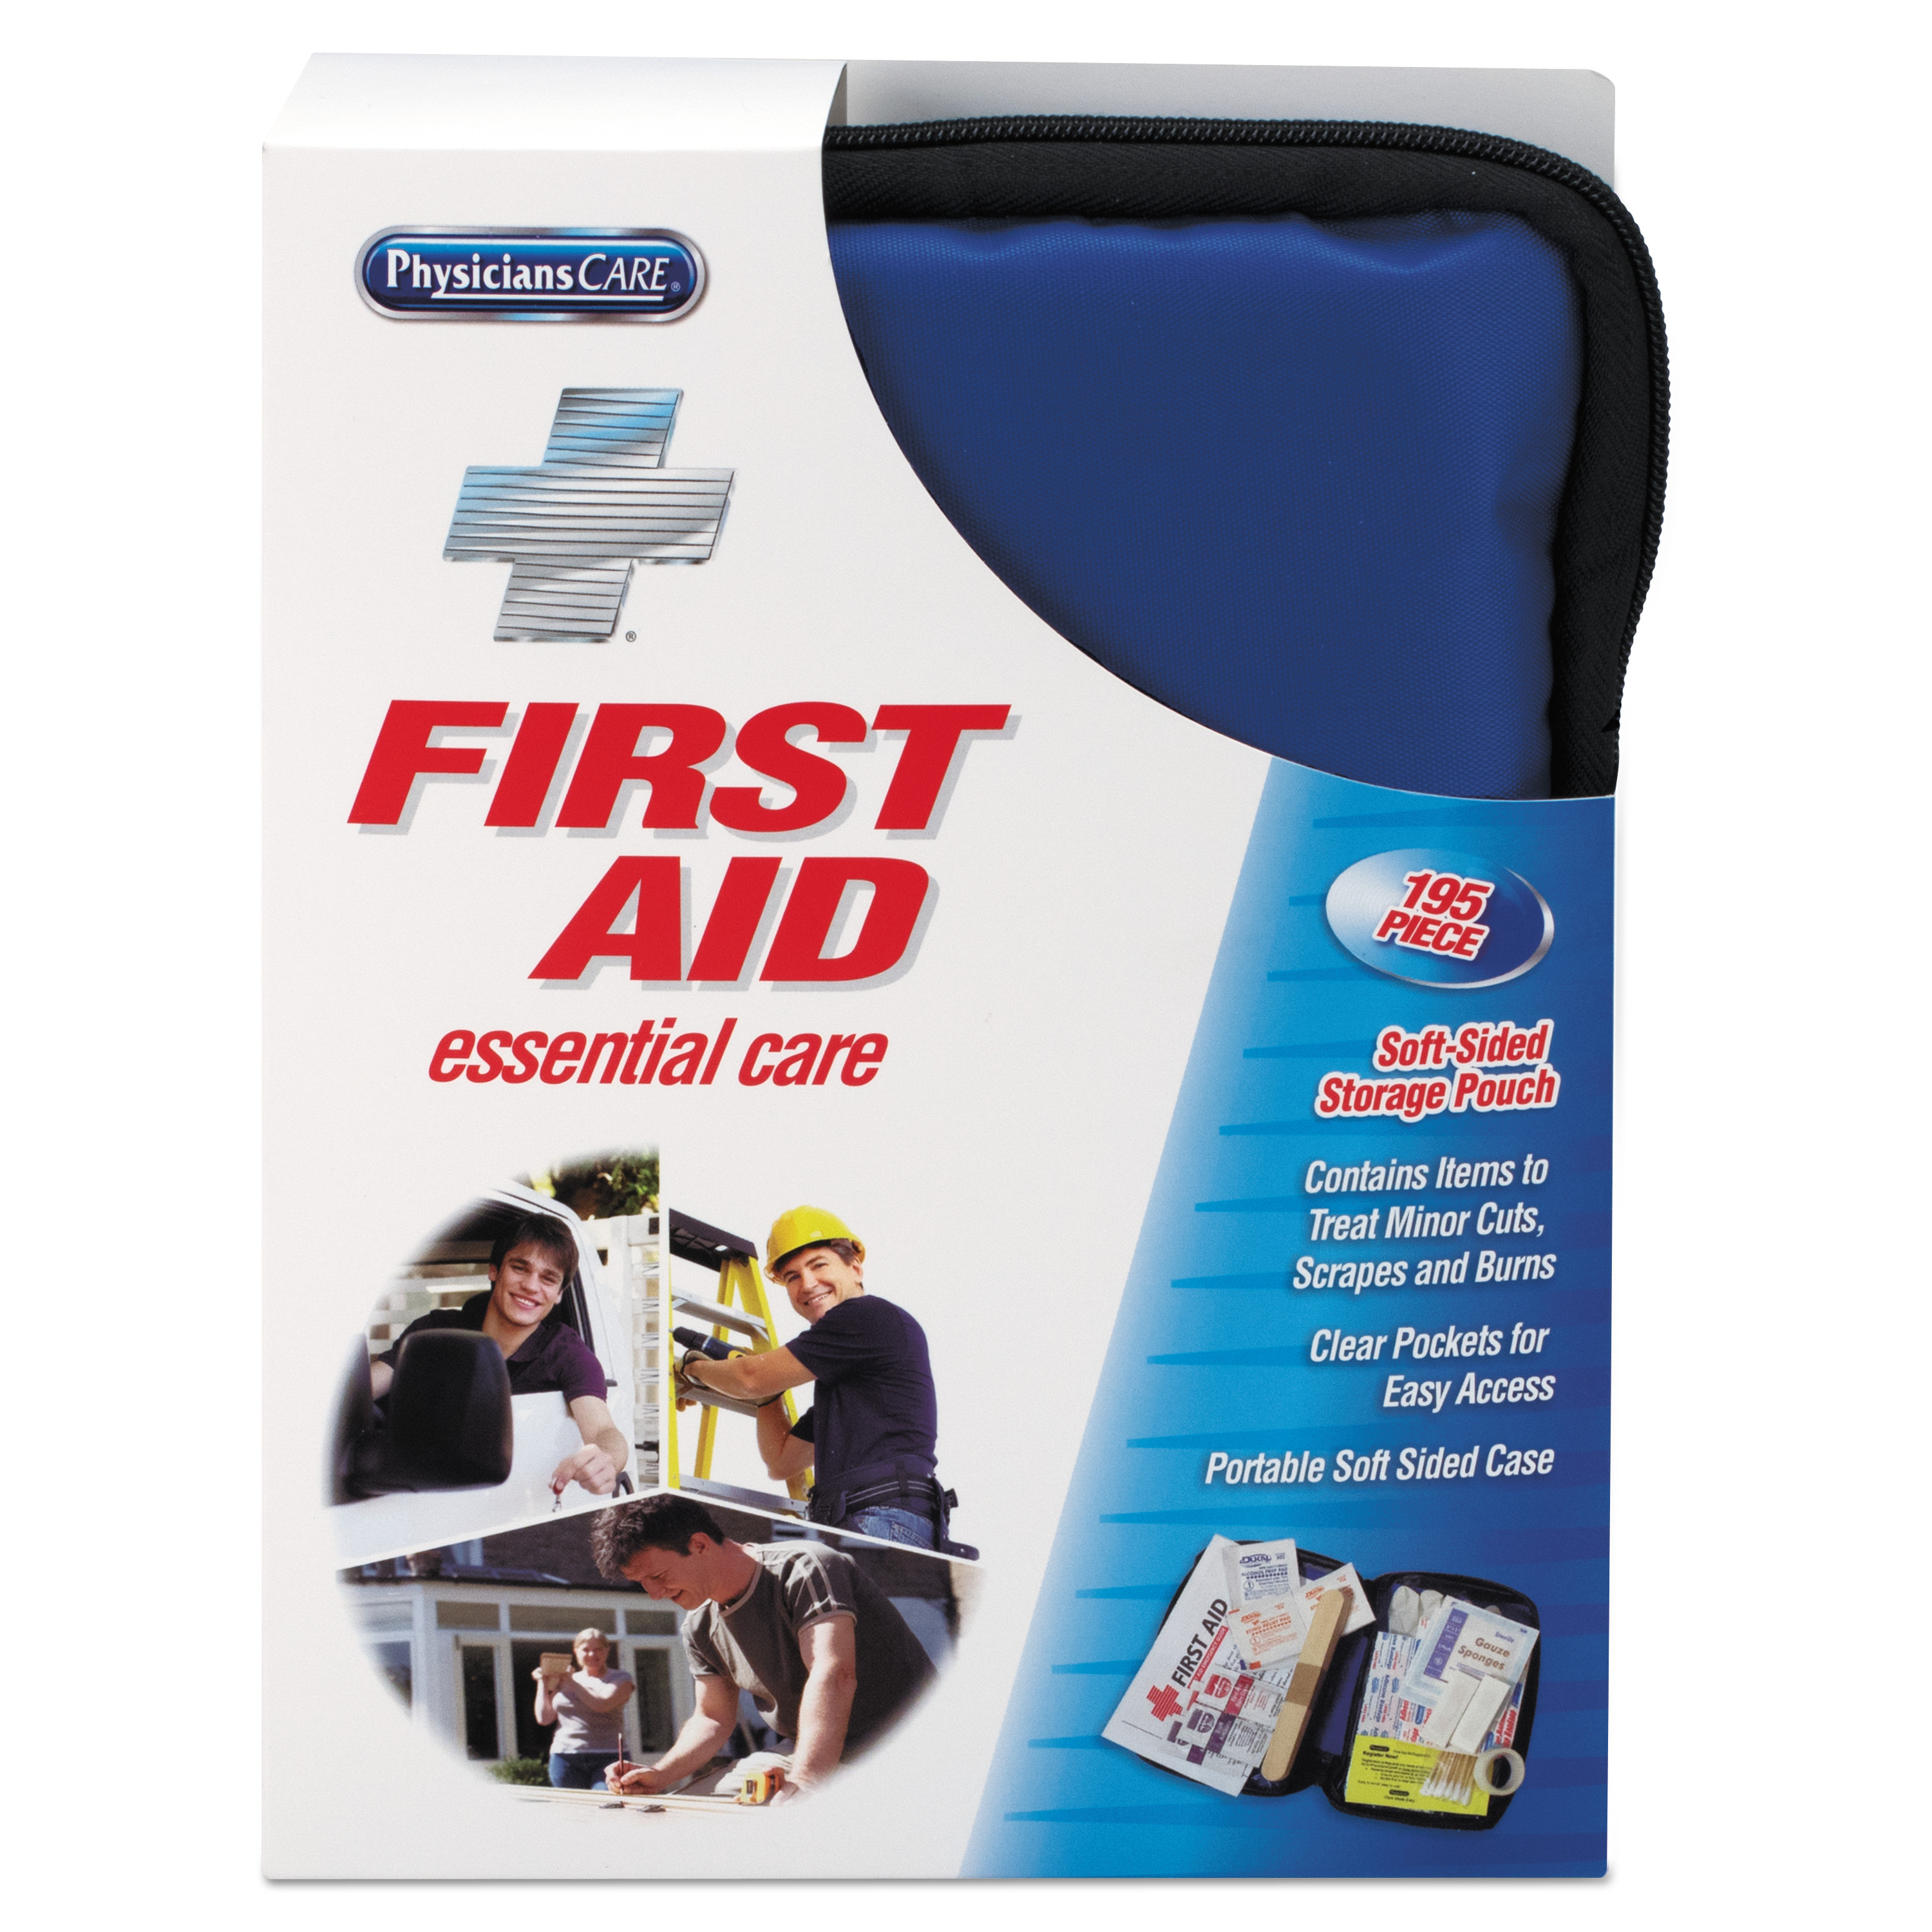 ACME UNITED CORPORATION Soft-Sided First Aid Kit For Up To 25 People